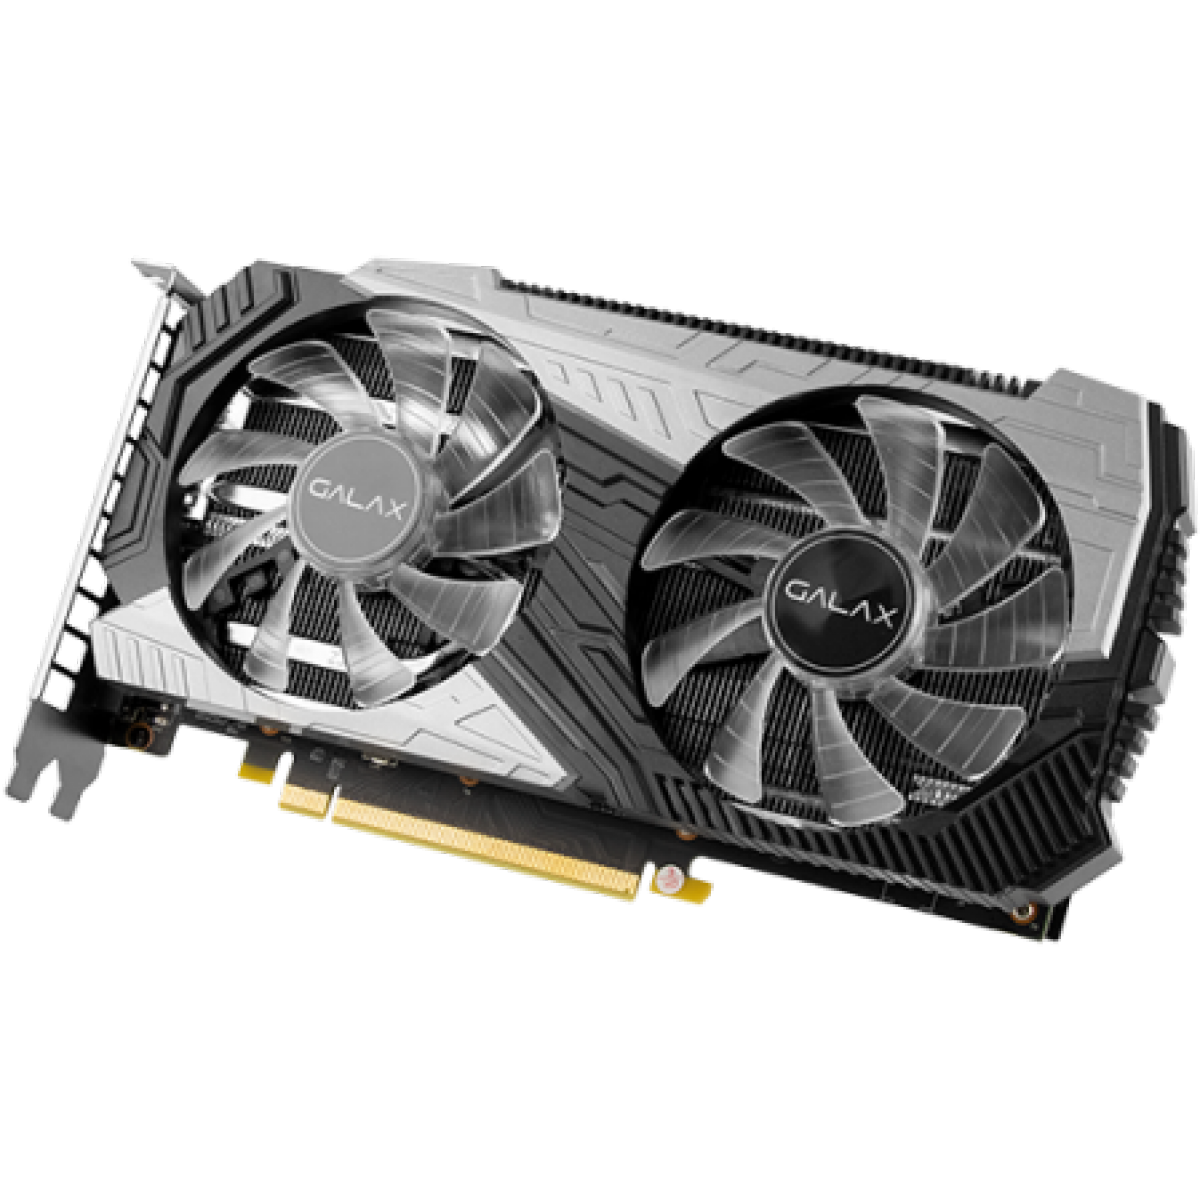 Placa de Vídeo Galax, GeForce, RTX 2060 Super V2, 1-Click OC, 8GB, GDDR6, 256Bit, 26ISL6HP68LD